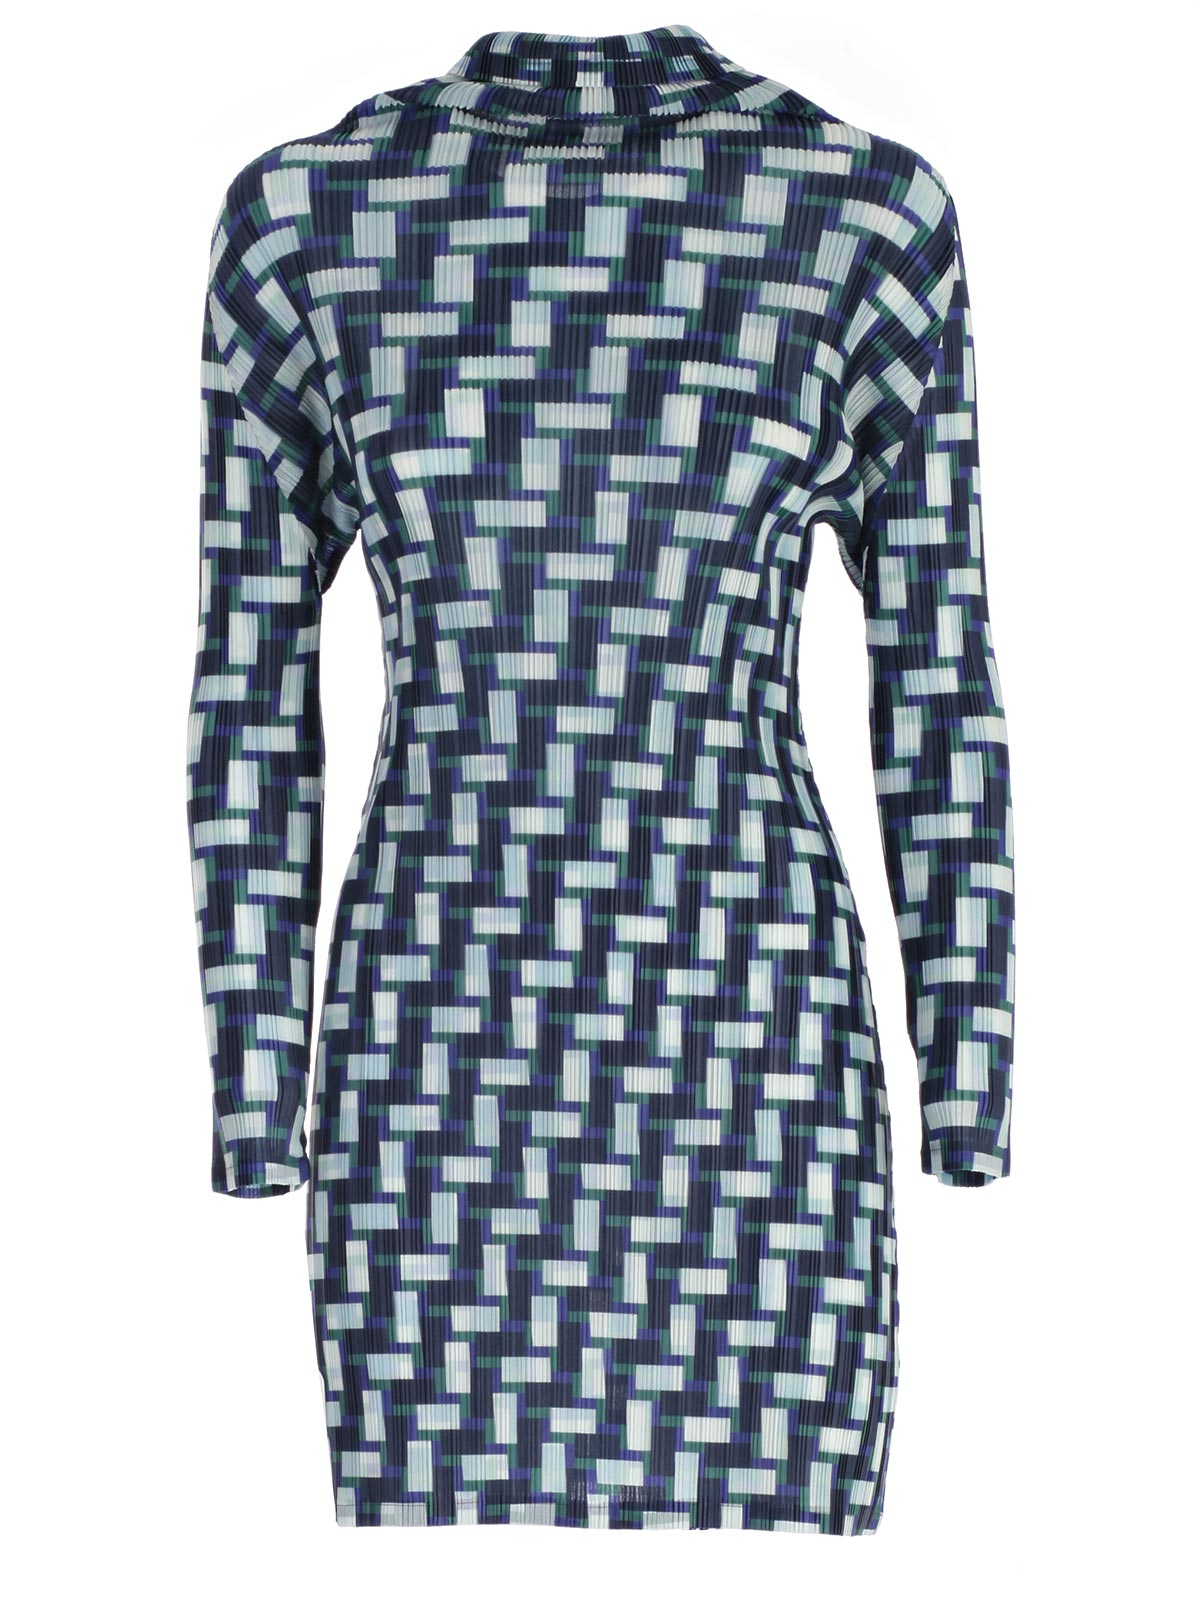 Picture of PLEATS PLEASE BY ISSEY MIYAKE SHIRTS CAMICIA